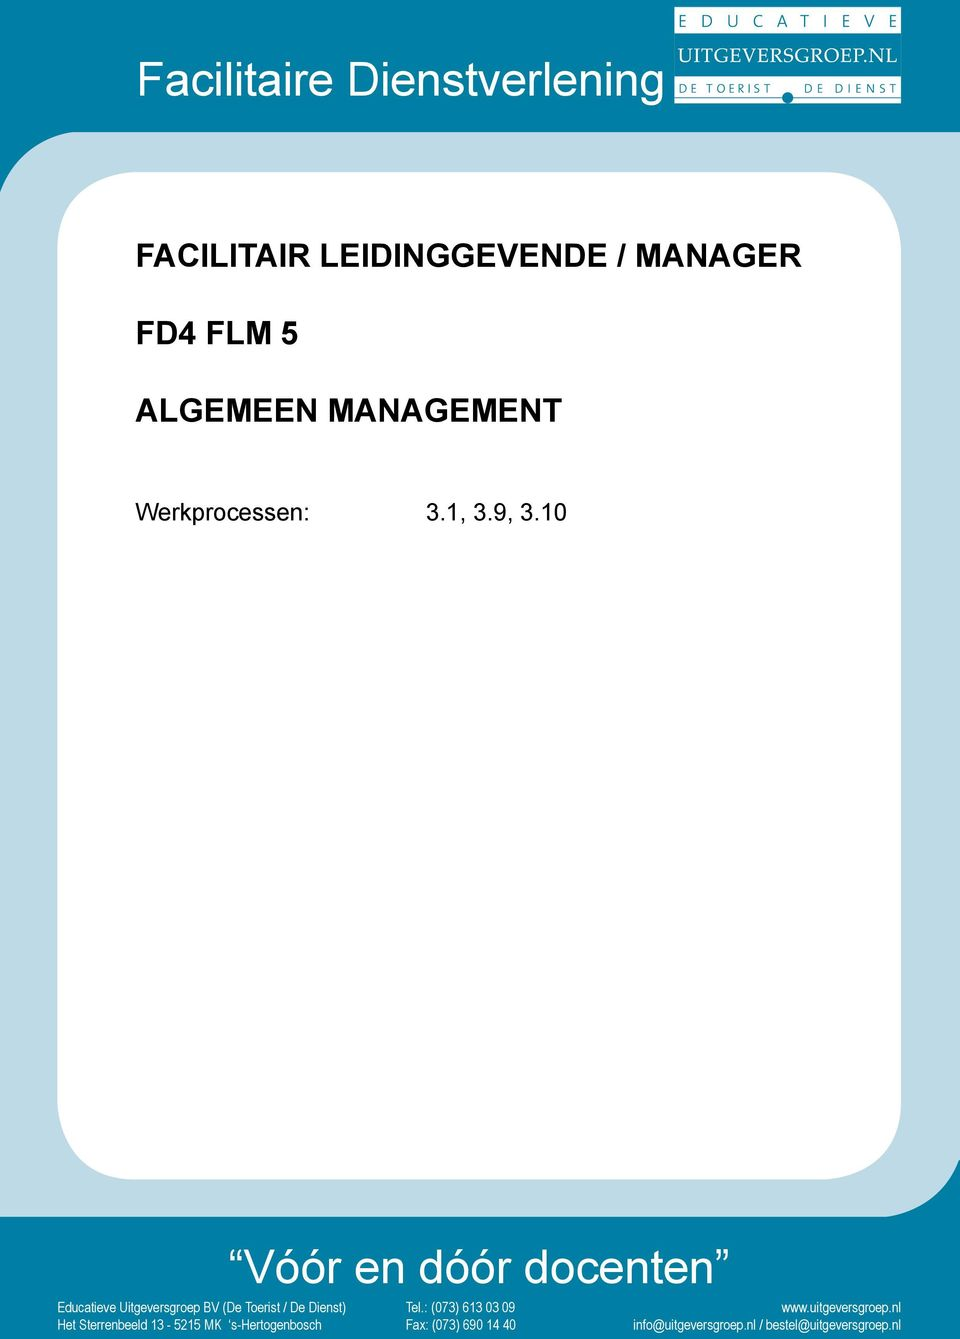 MANAGER FD4 FLM 5